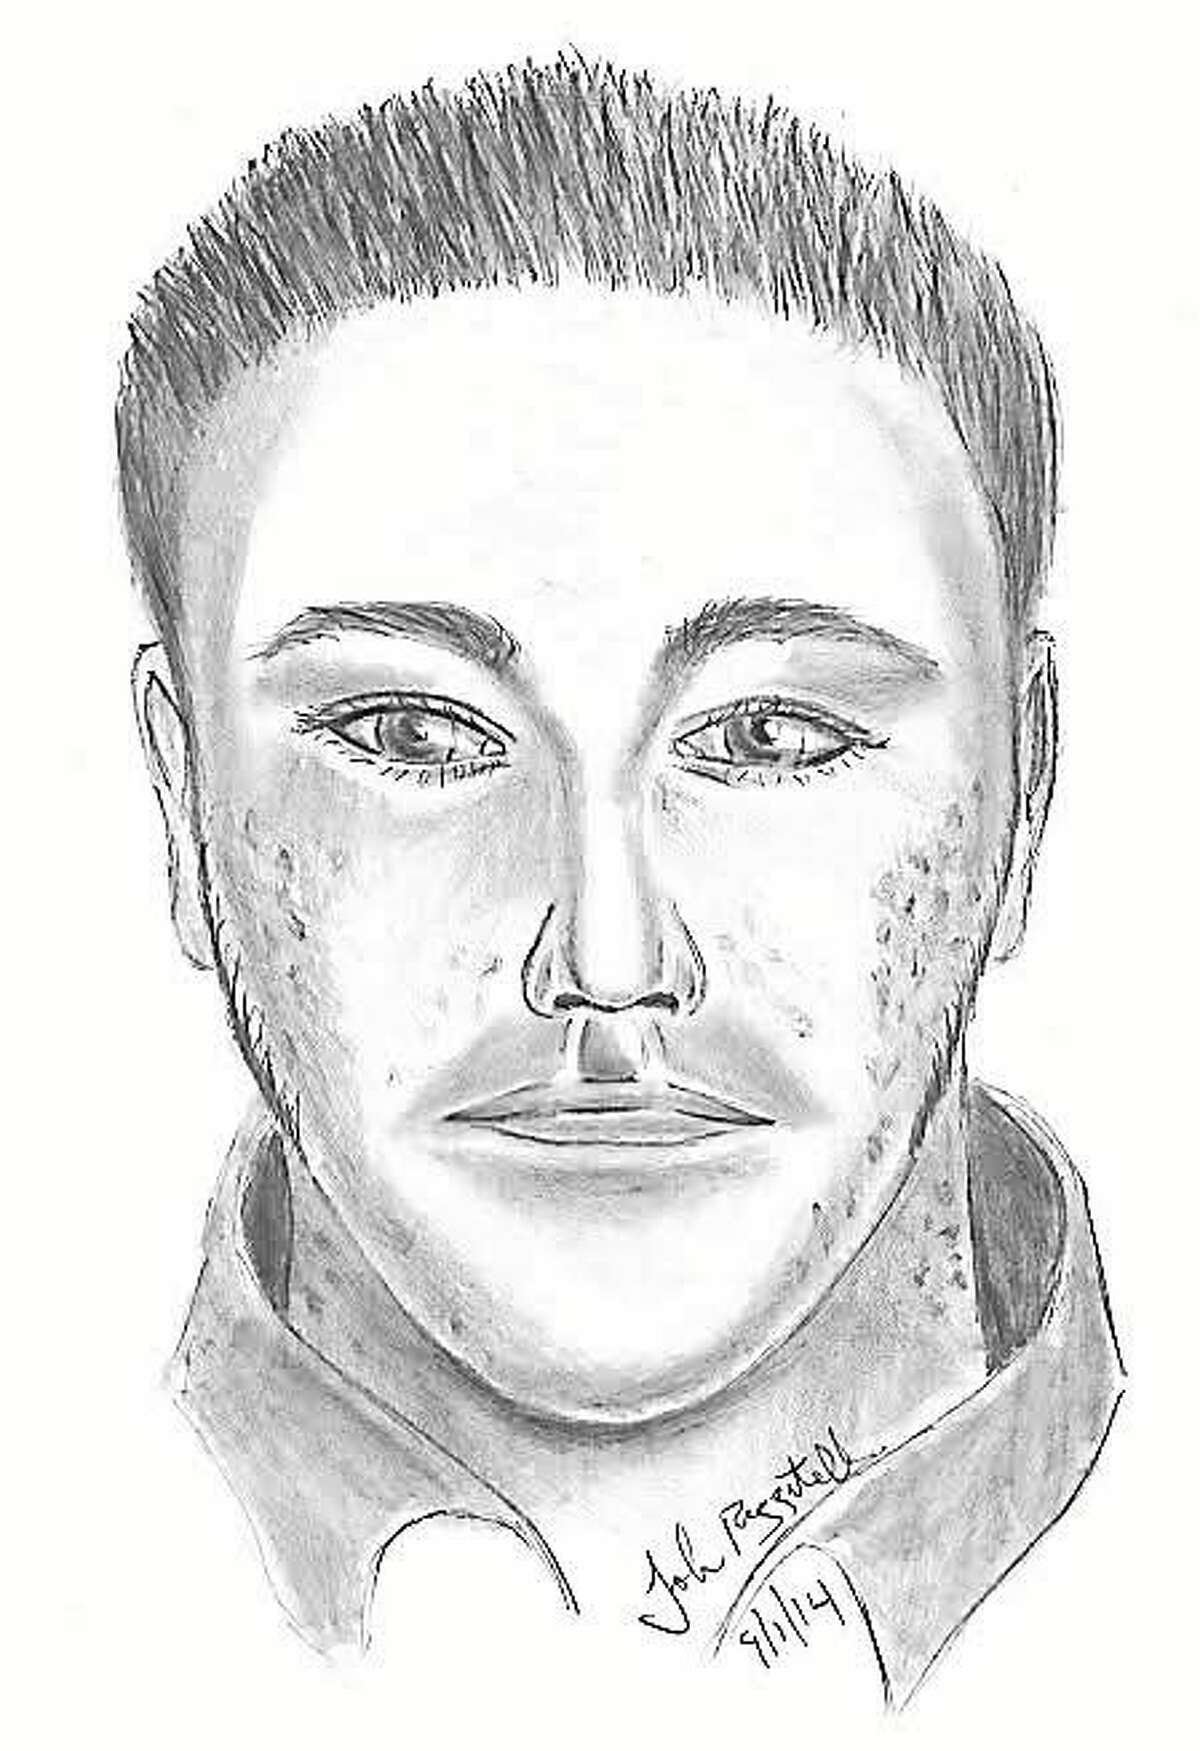 Photo sketch of the sexual assault suspect provided by the Fairfield Police Department.